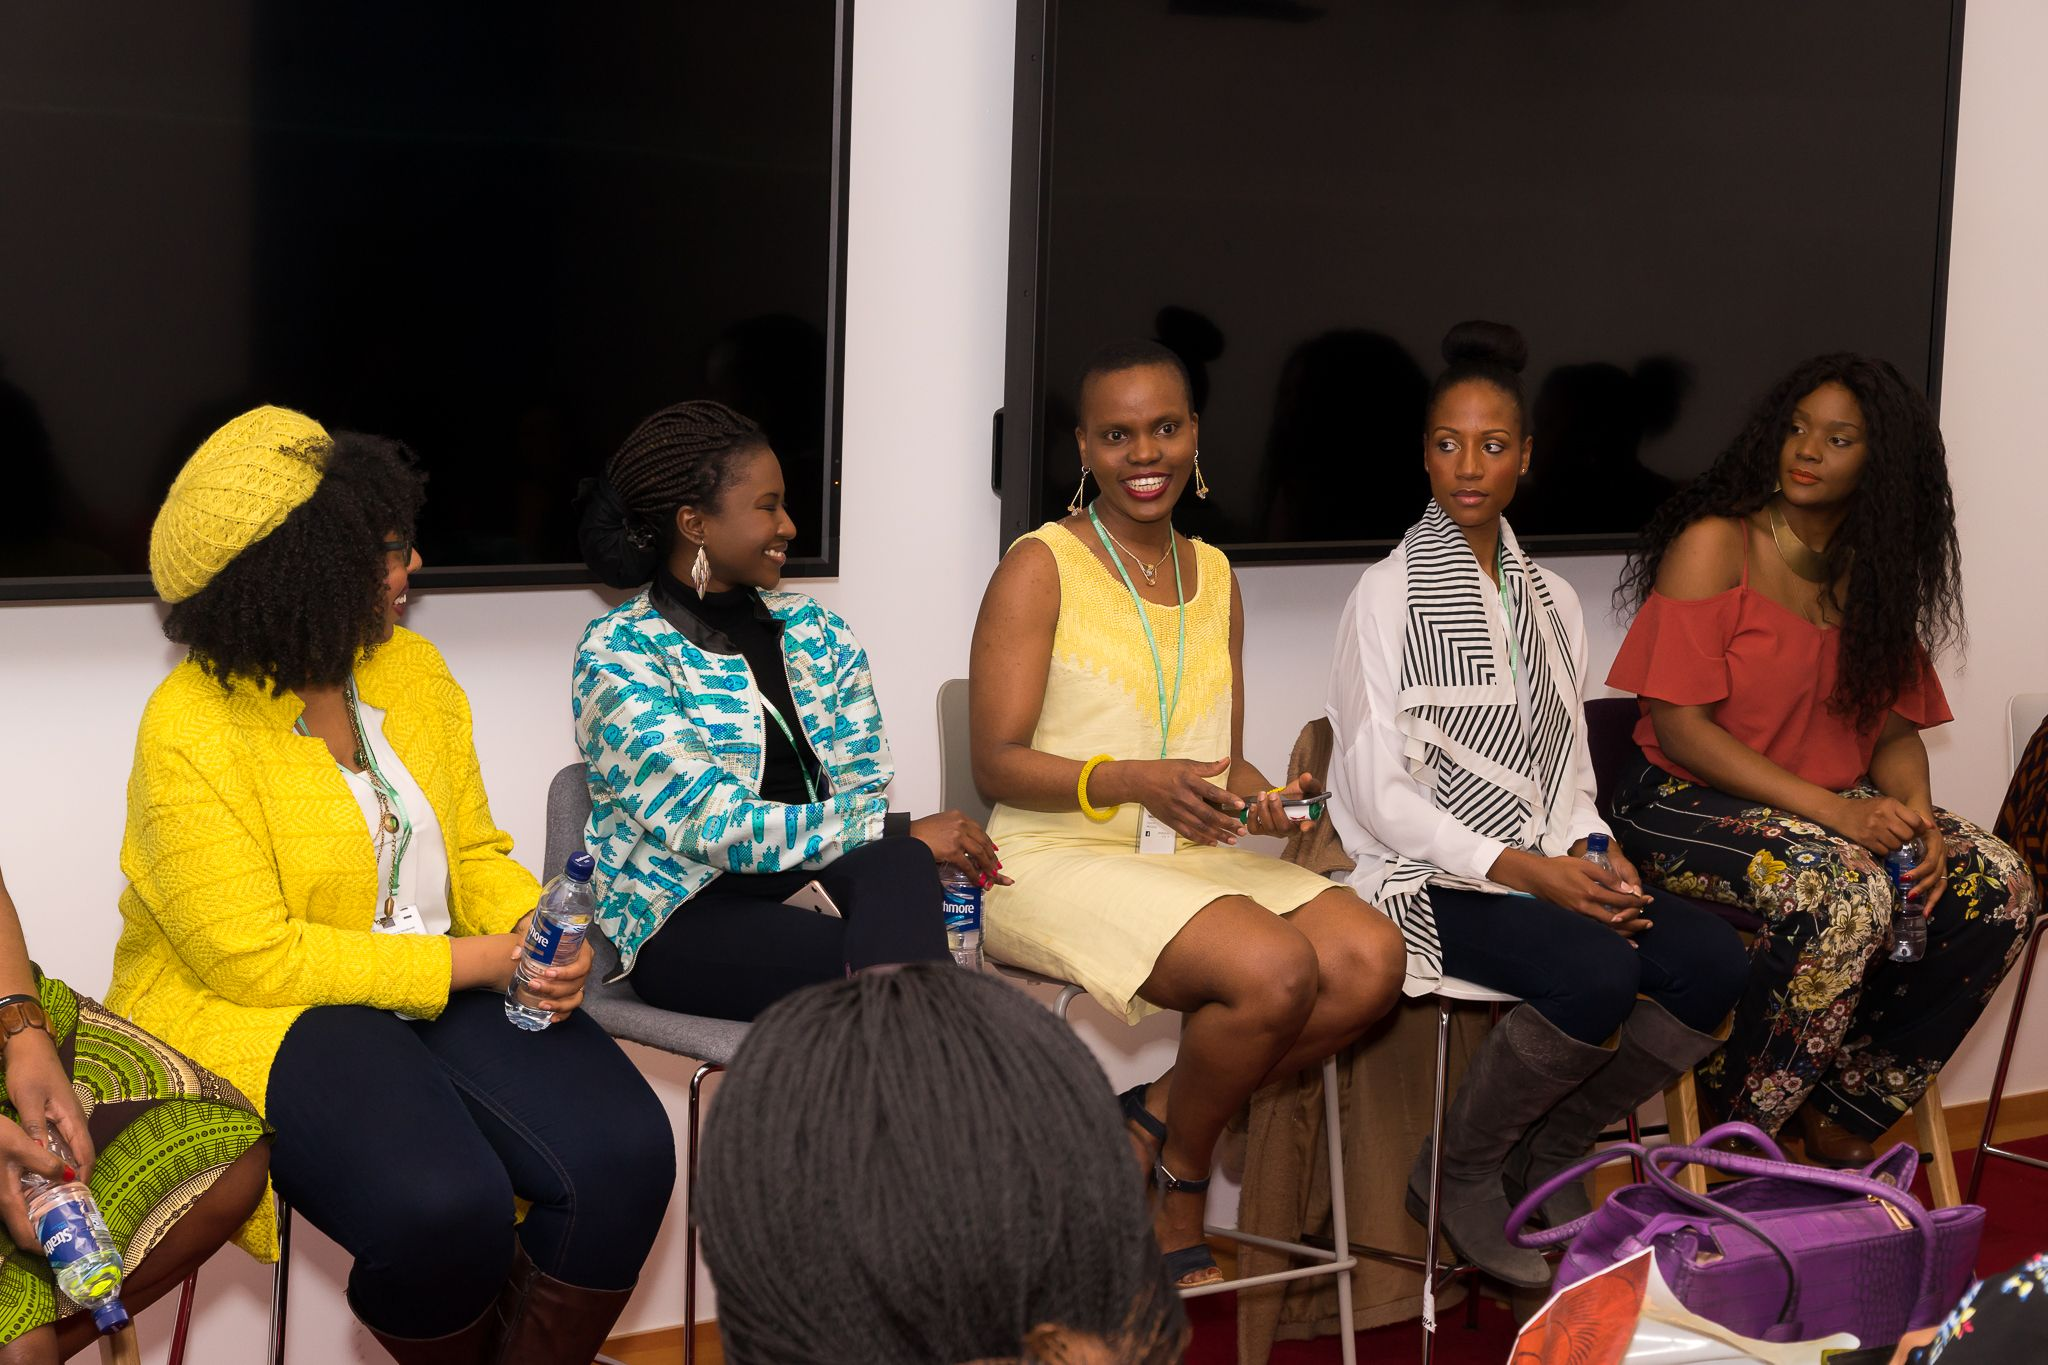 Afrofoodie press | Conversations in Tokunbo's kitchen at Facebook London